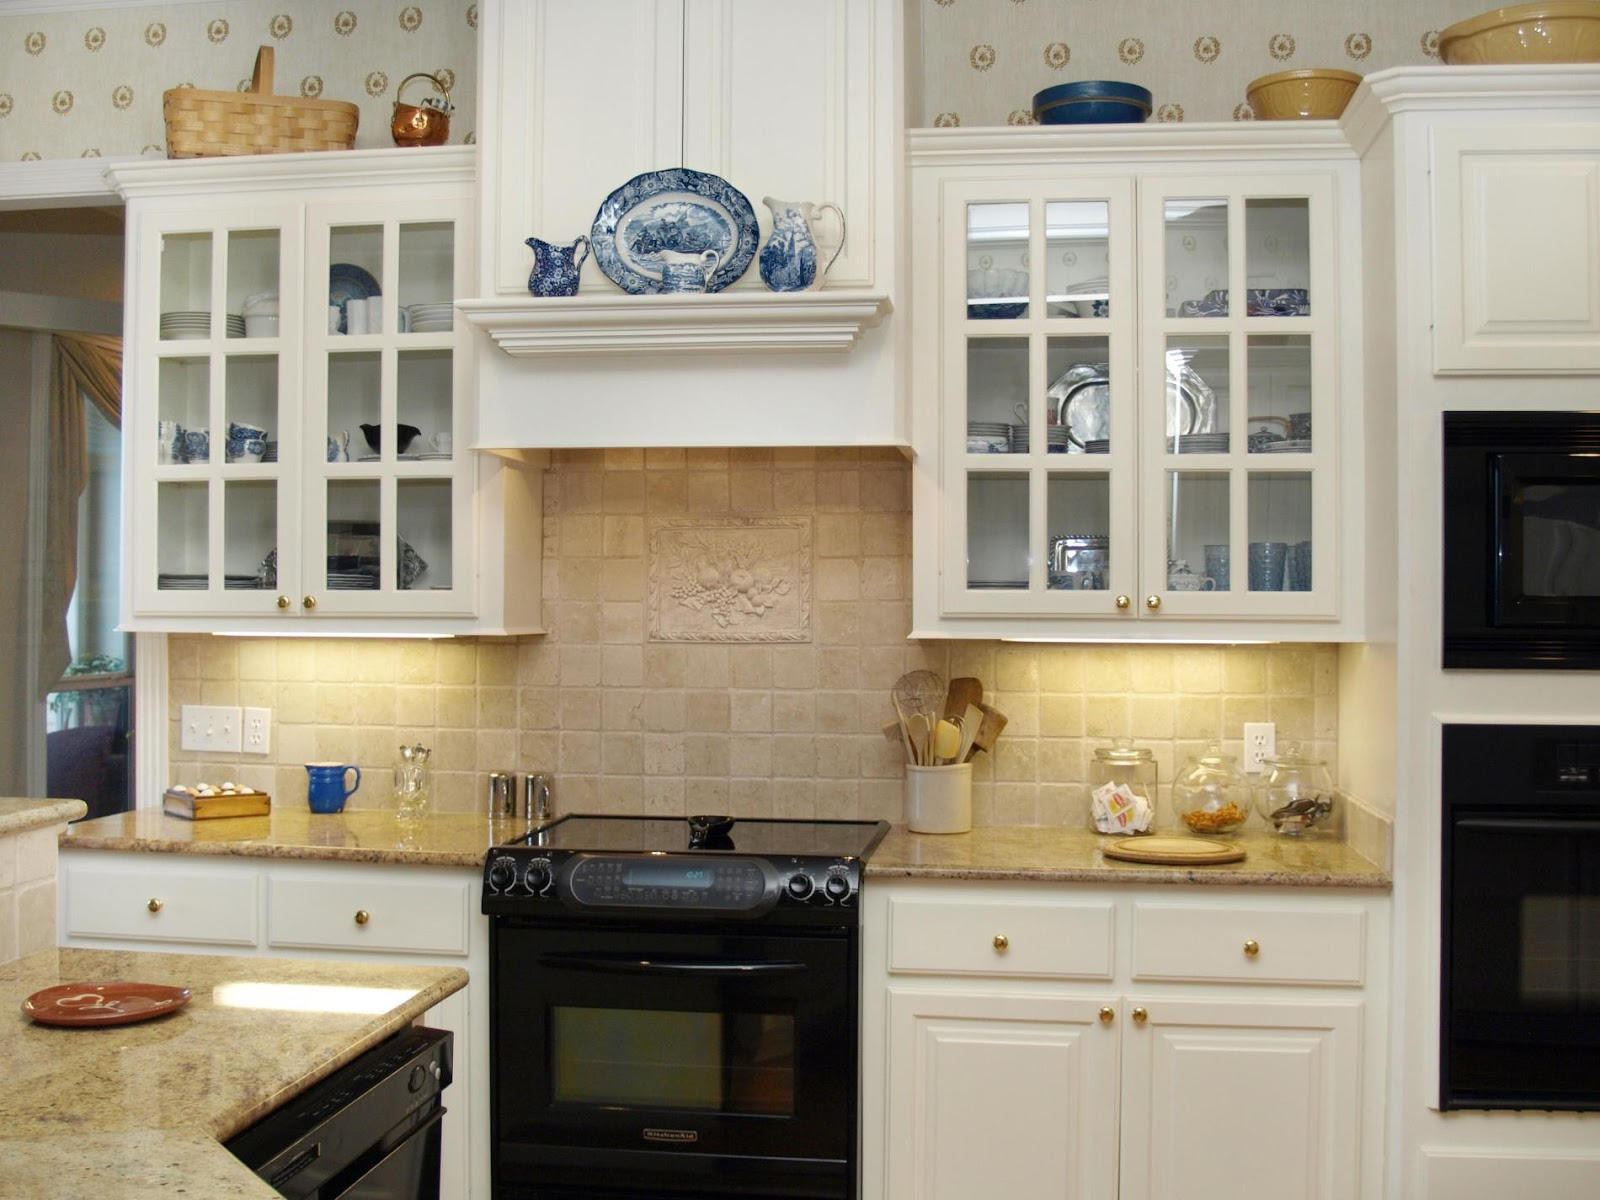 Kitchen Decoration Designs Of Kitchen Shelves Decoration Dream House Experience